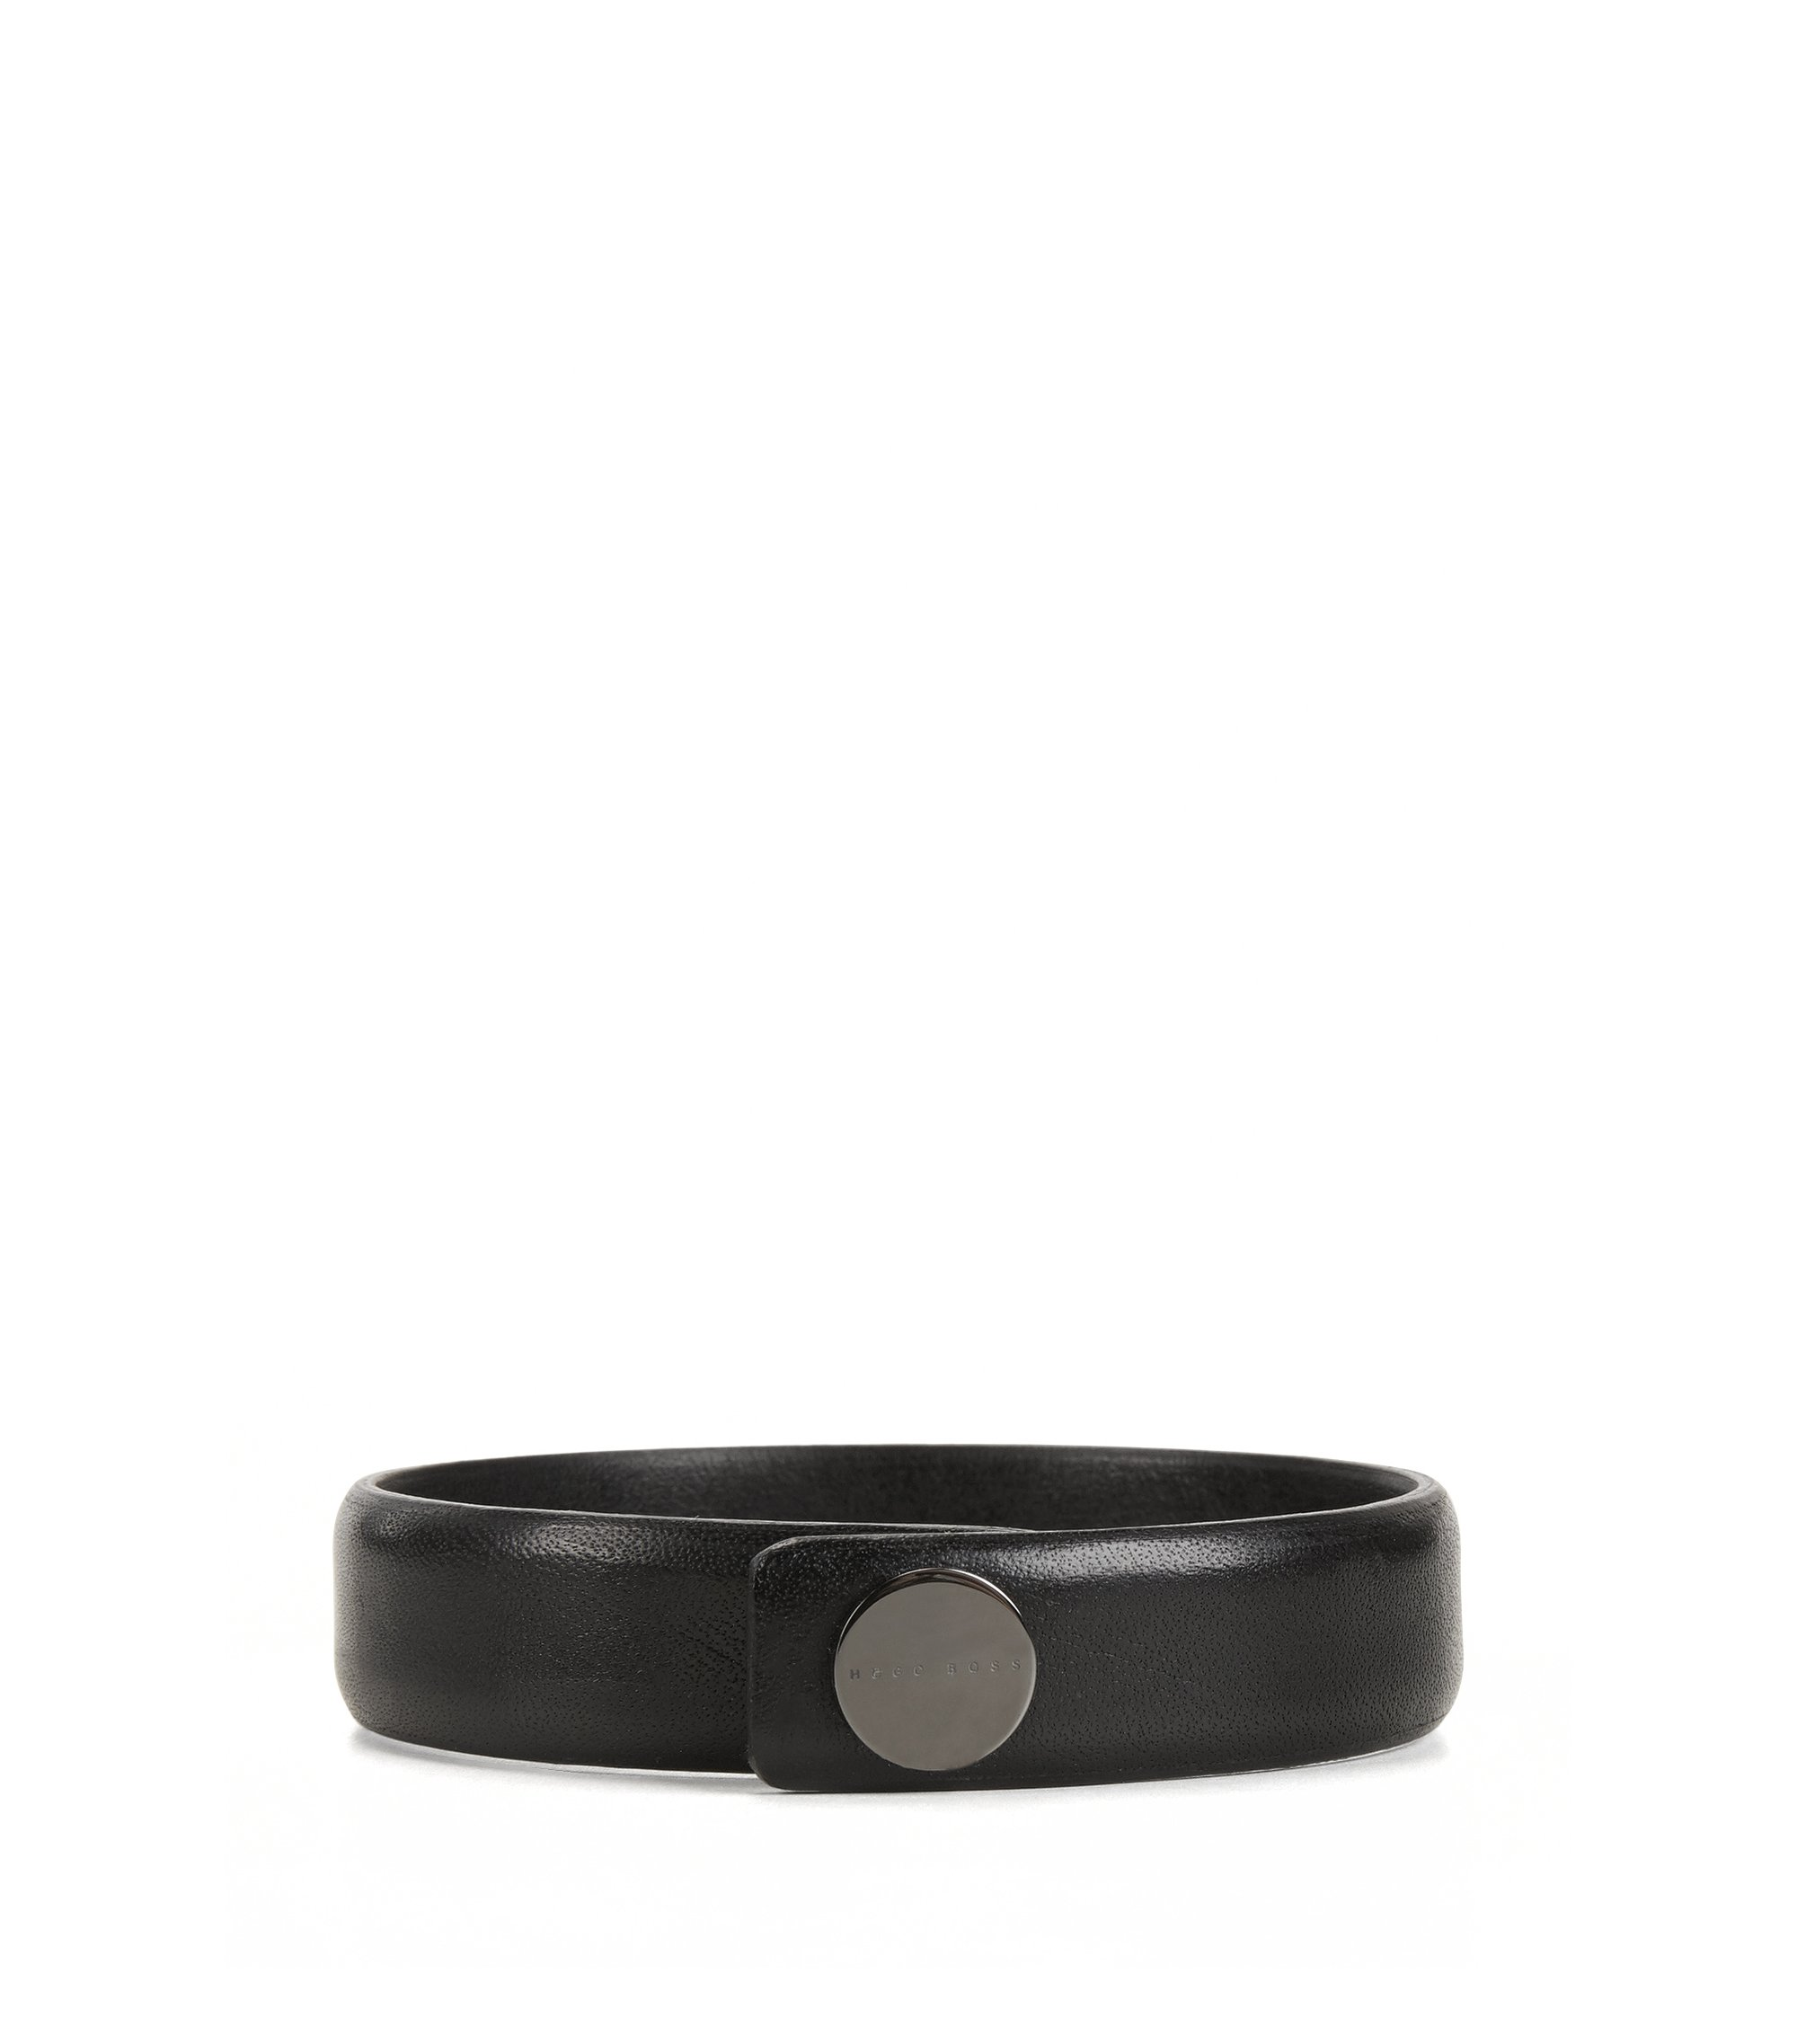 Grained leather bracelet with press-stud closure, Black